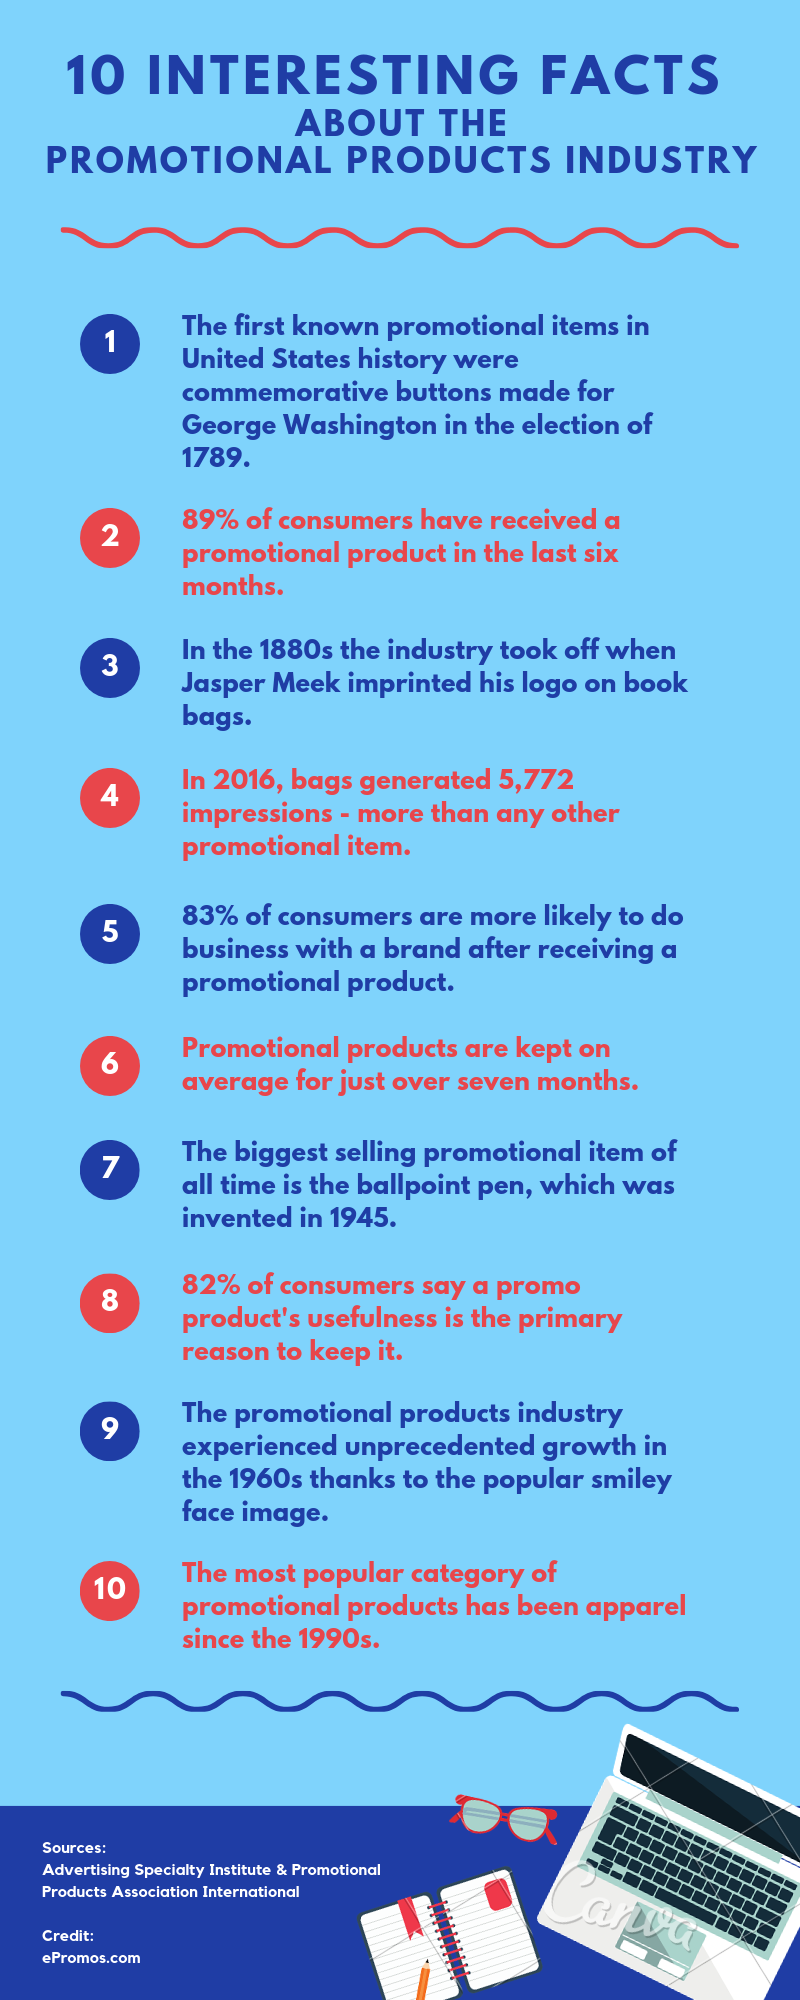 10 Interesting Facts About the Promotional Products Industry